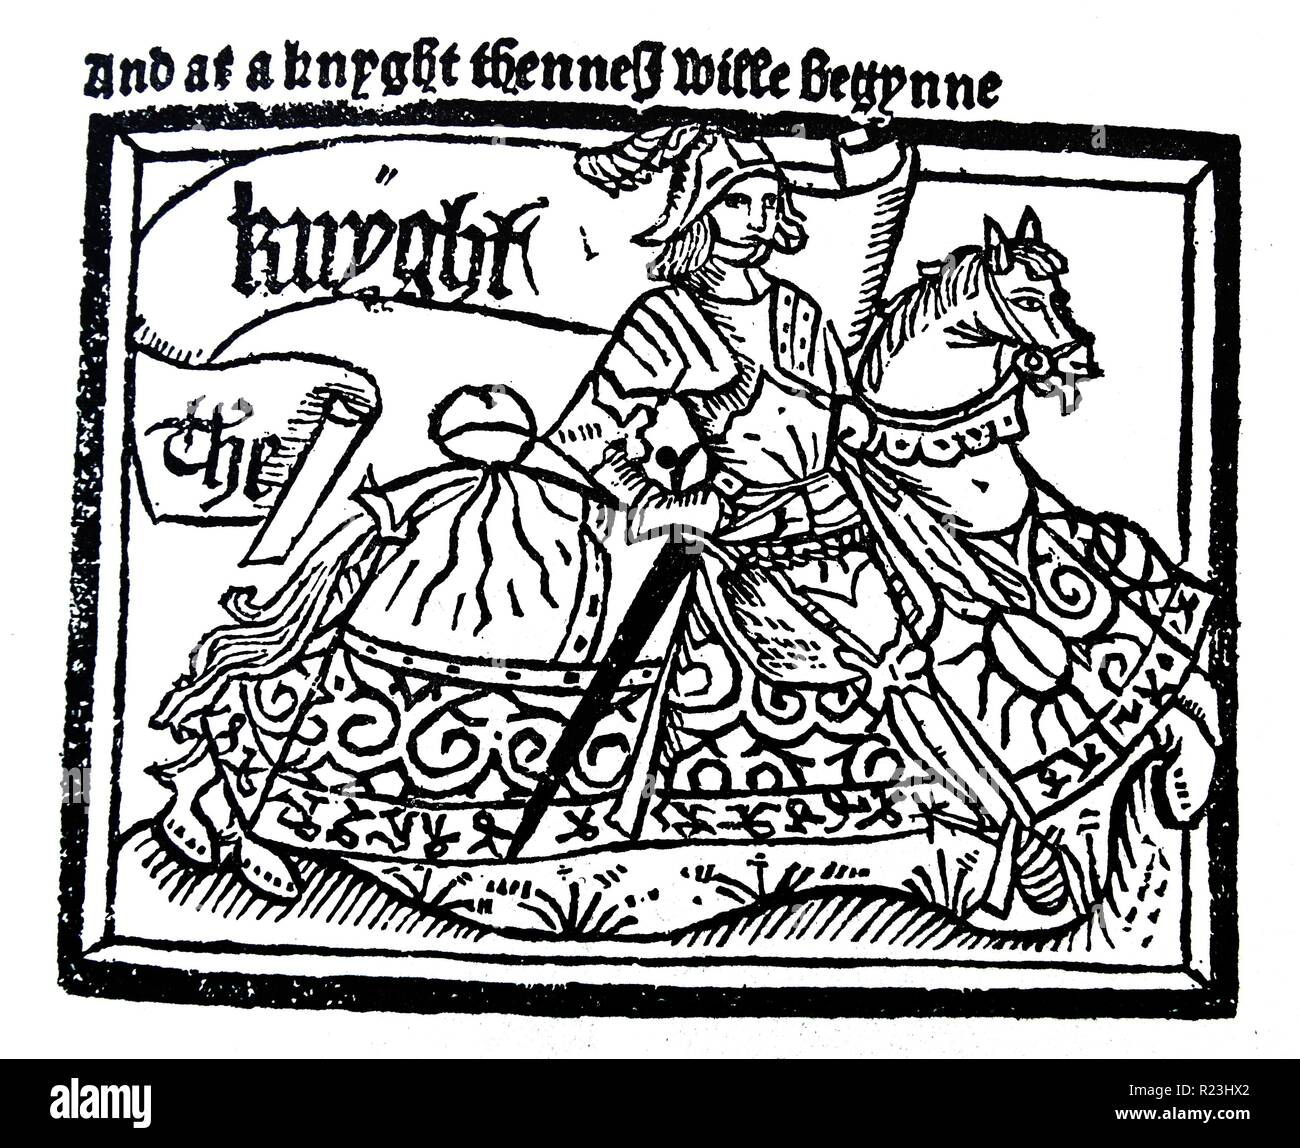 A line drawing of the Chaucer's Knight, from the Canterbury Tales 'The Knight's Tale'. The Knight's Tale, is the first tale from Geoffrey Chaucer's The Canterbury Tales. The story introduces various typical aspects of knighthood such as courtly love and ethical dilemmas. Dated 14th Century - Stock Image